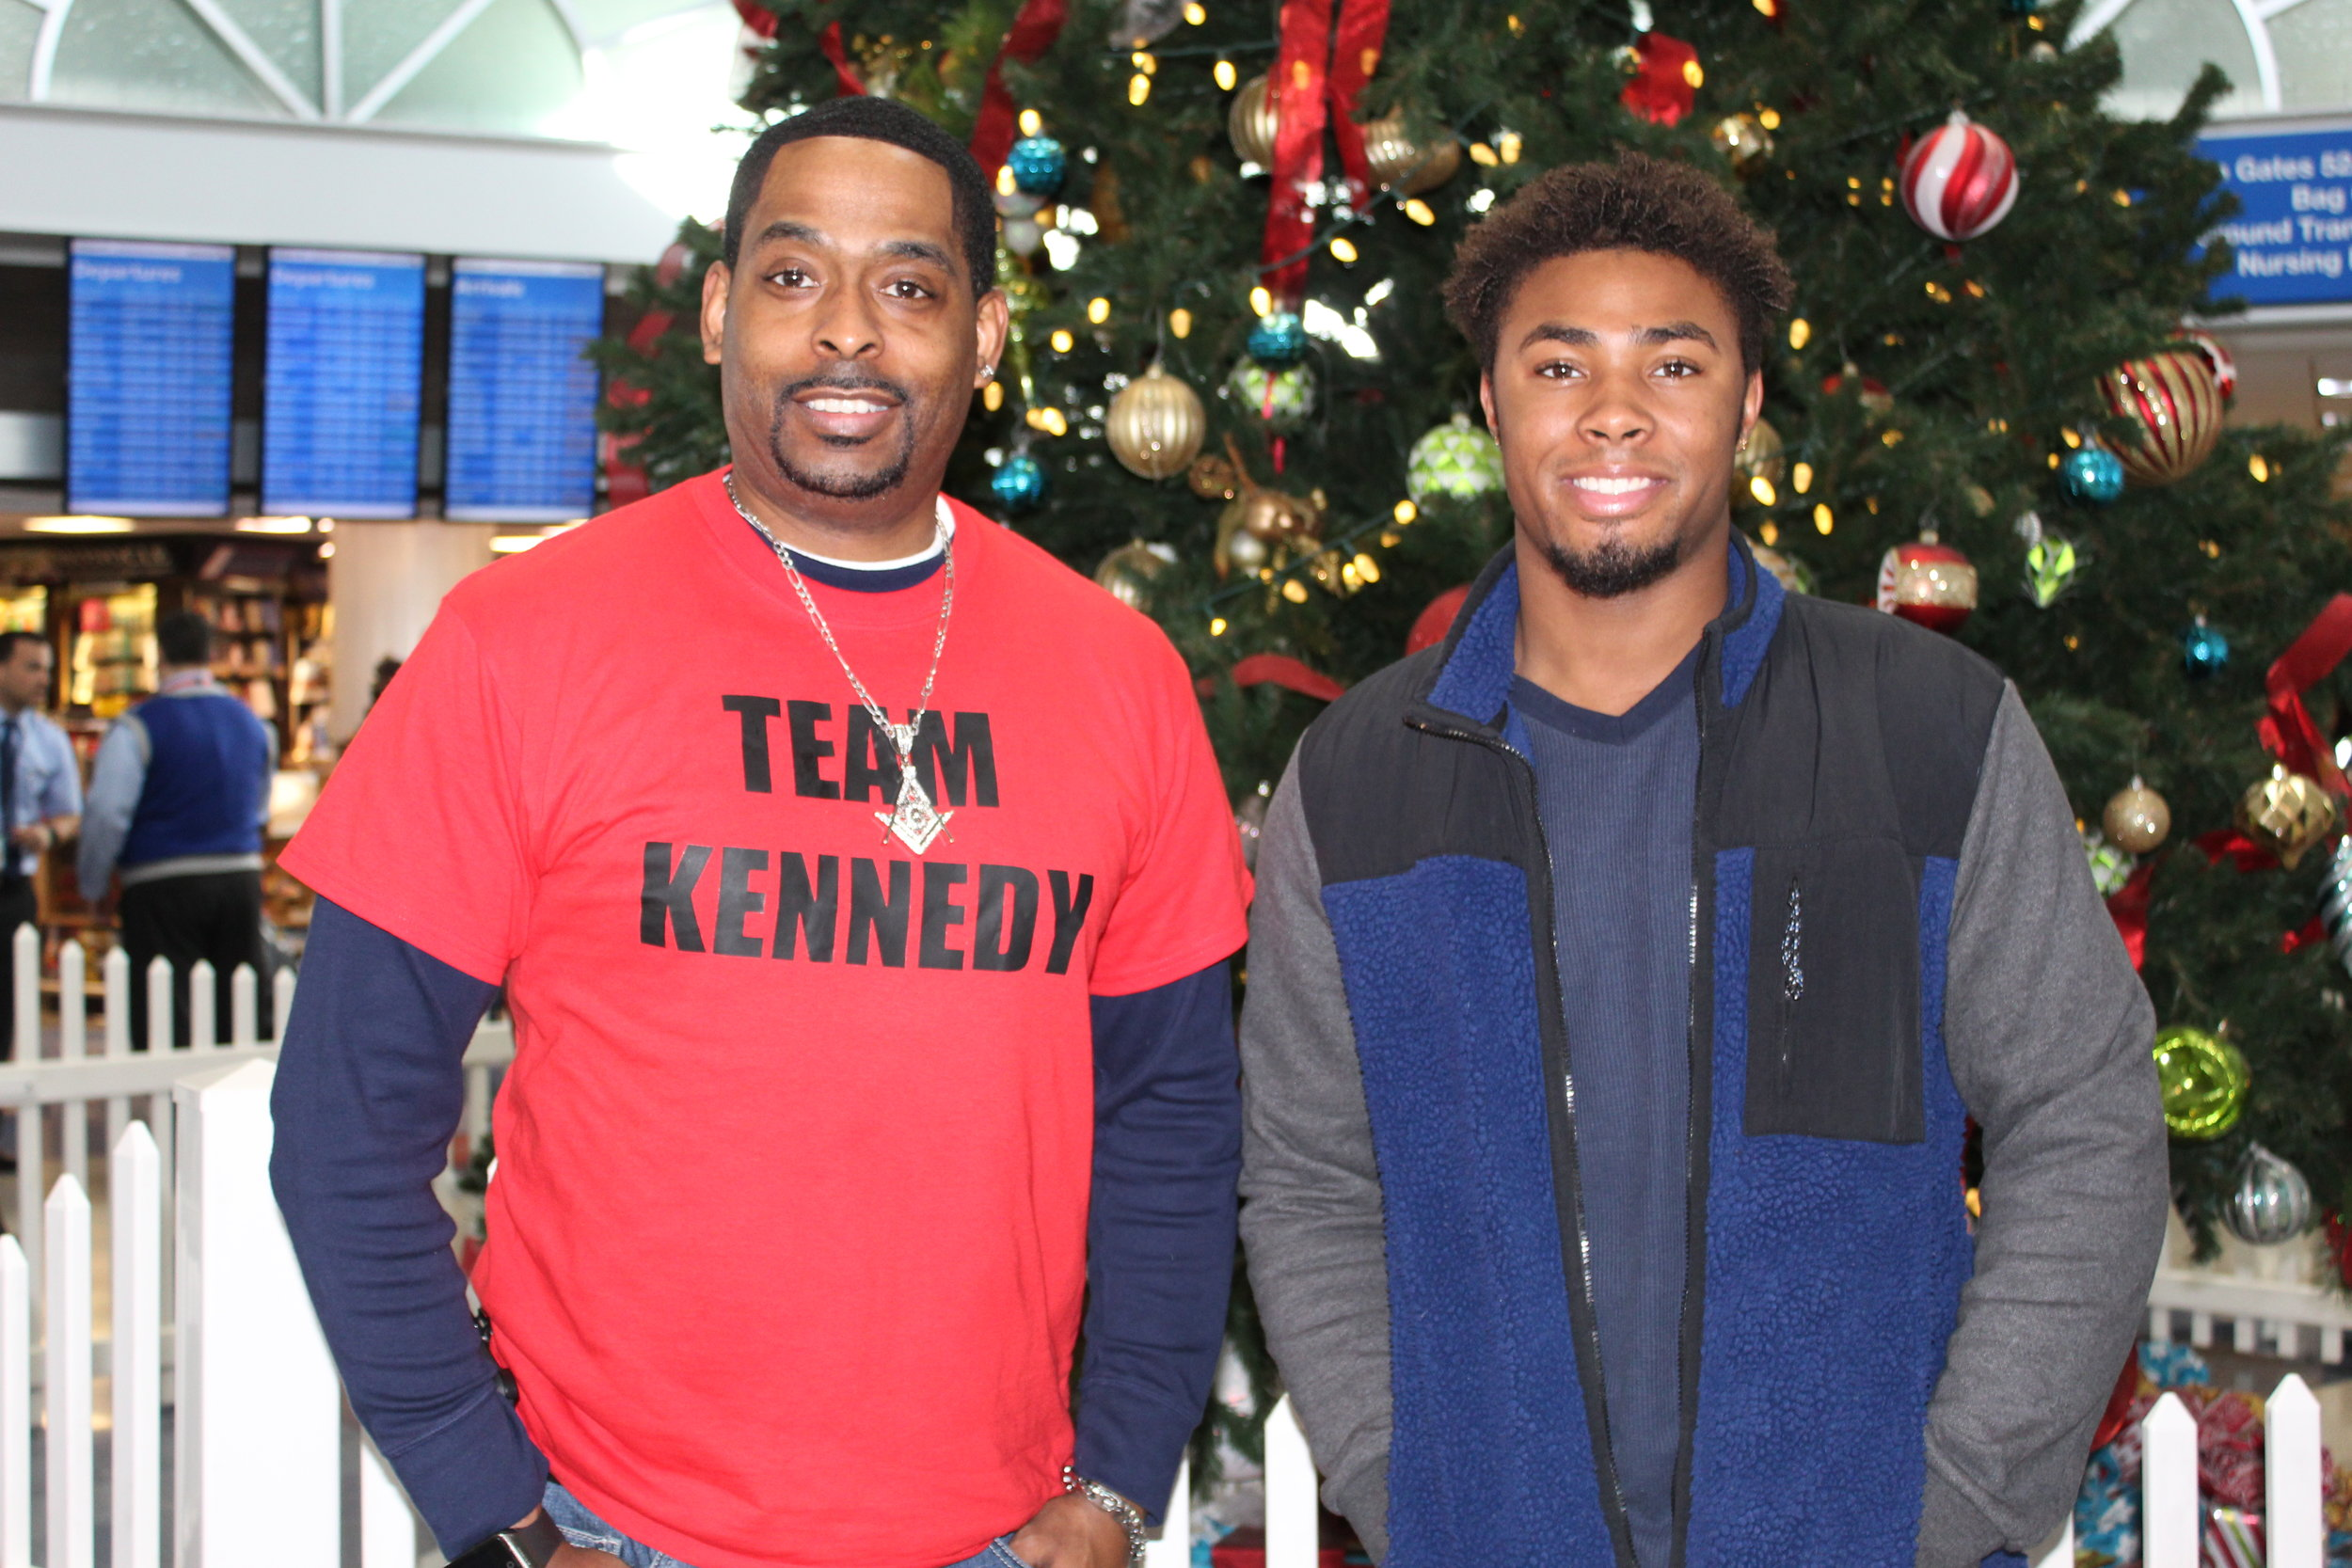 Shawn and Jordan Holmes, father and brother to Kennedy, heading back to St. Louis after the big finale.